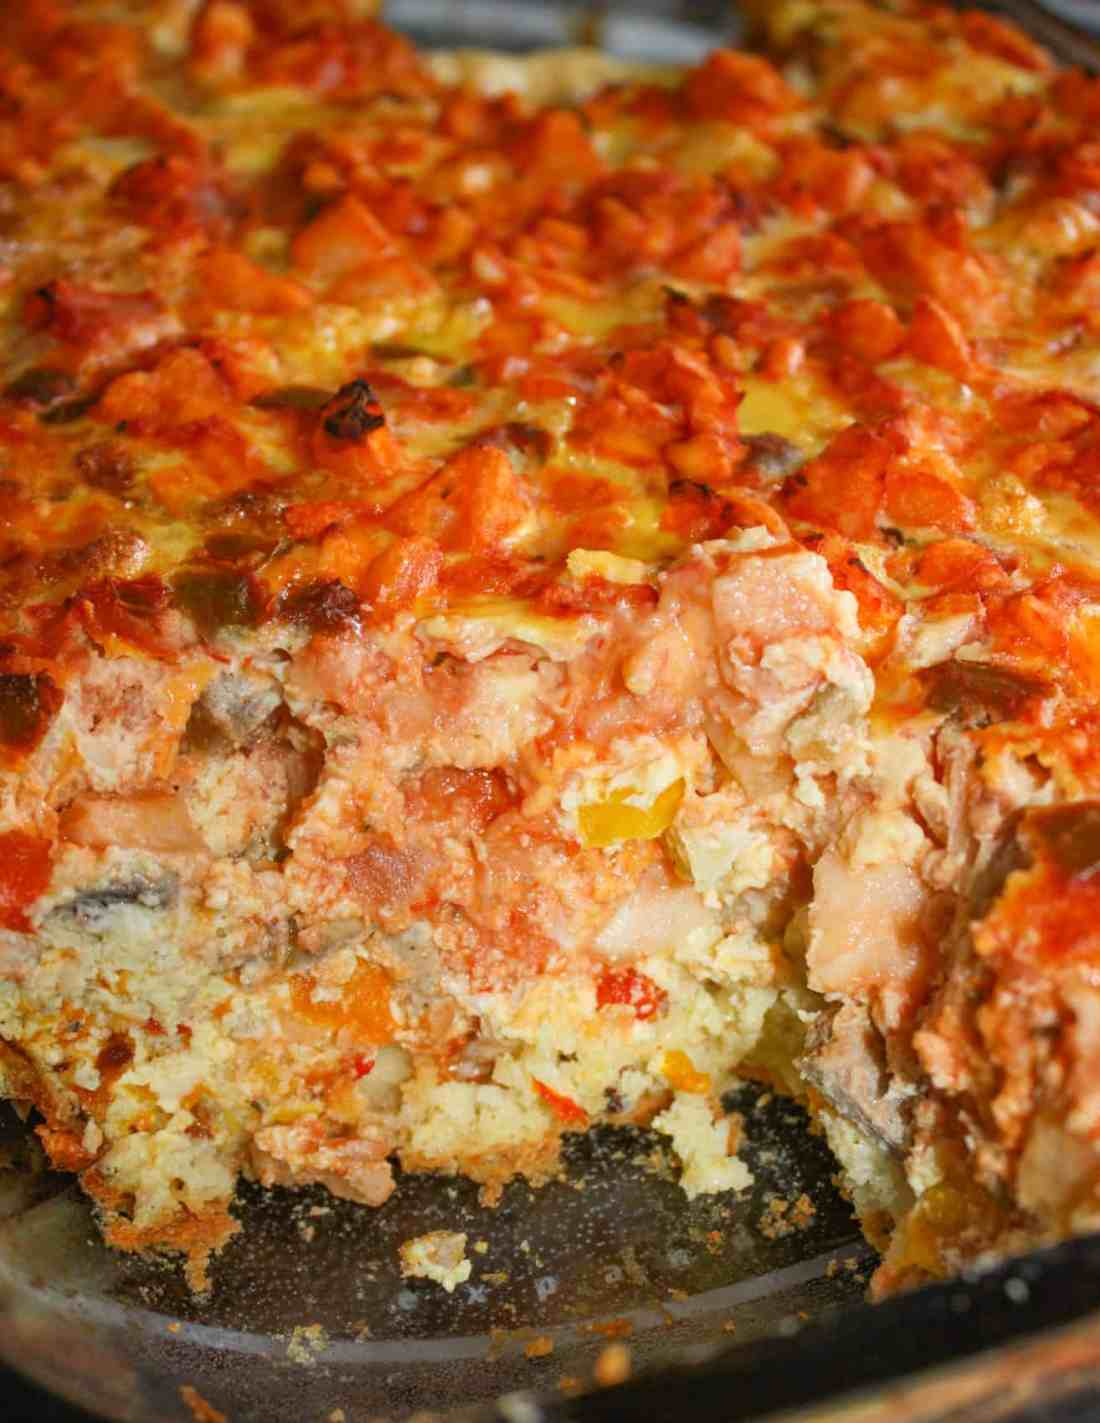 Loaded Breakfast Casserole is a hearty breakfast or brunch option that is loaded with flavour and goodness.  Serve it paired with a fruit salad for a complete meal.